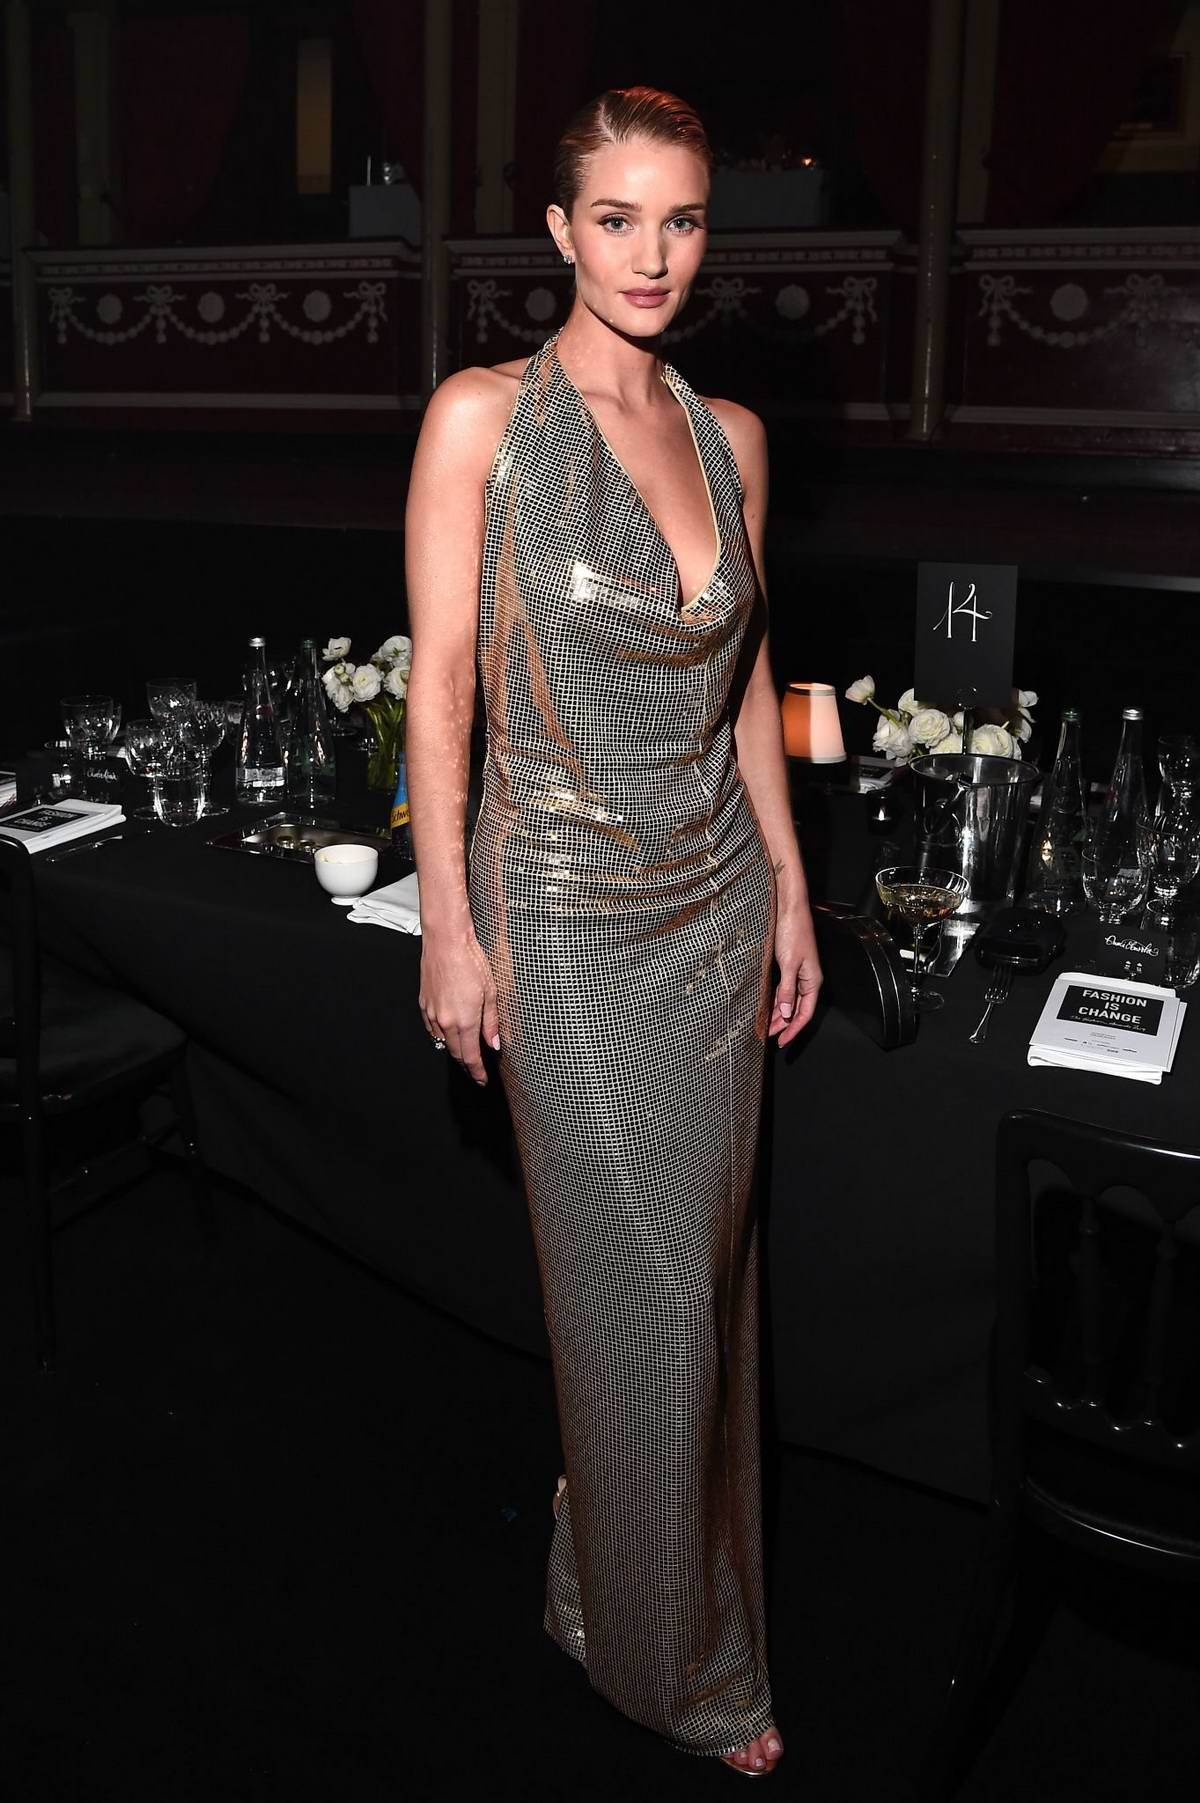 Rosie Huntington-Whiteley attends The Fashion Awards 2019 held at Royal Albert Hall in London, UK